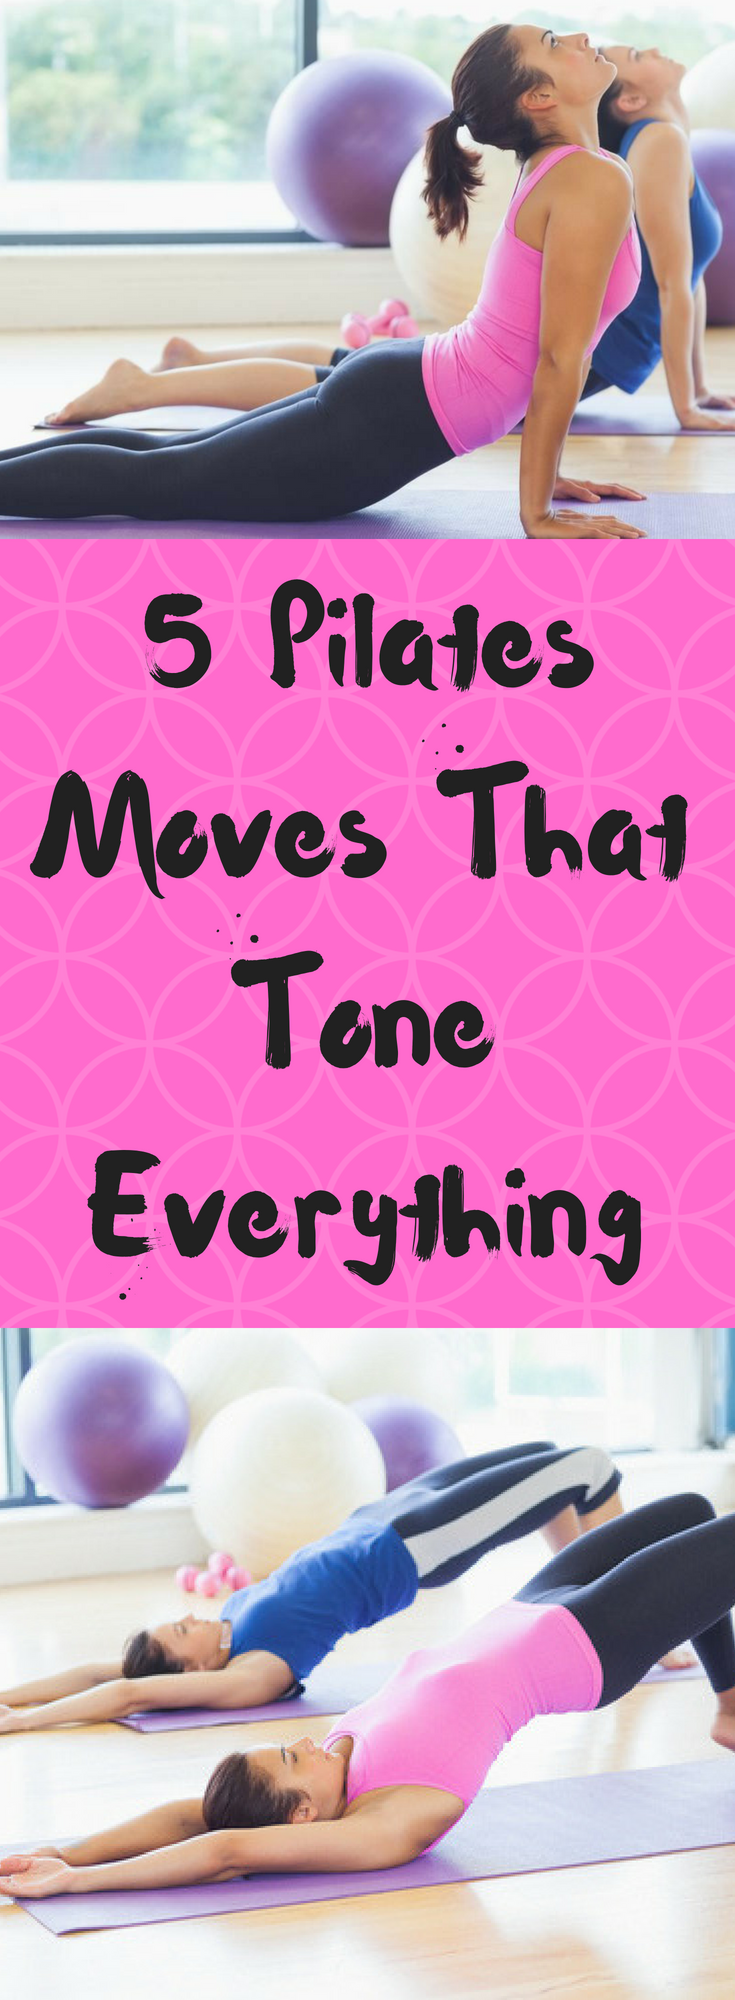 5 Pilates Moves That Torch Calories and Tone Everything #pilatesworkoutroutine